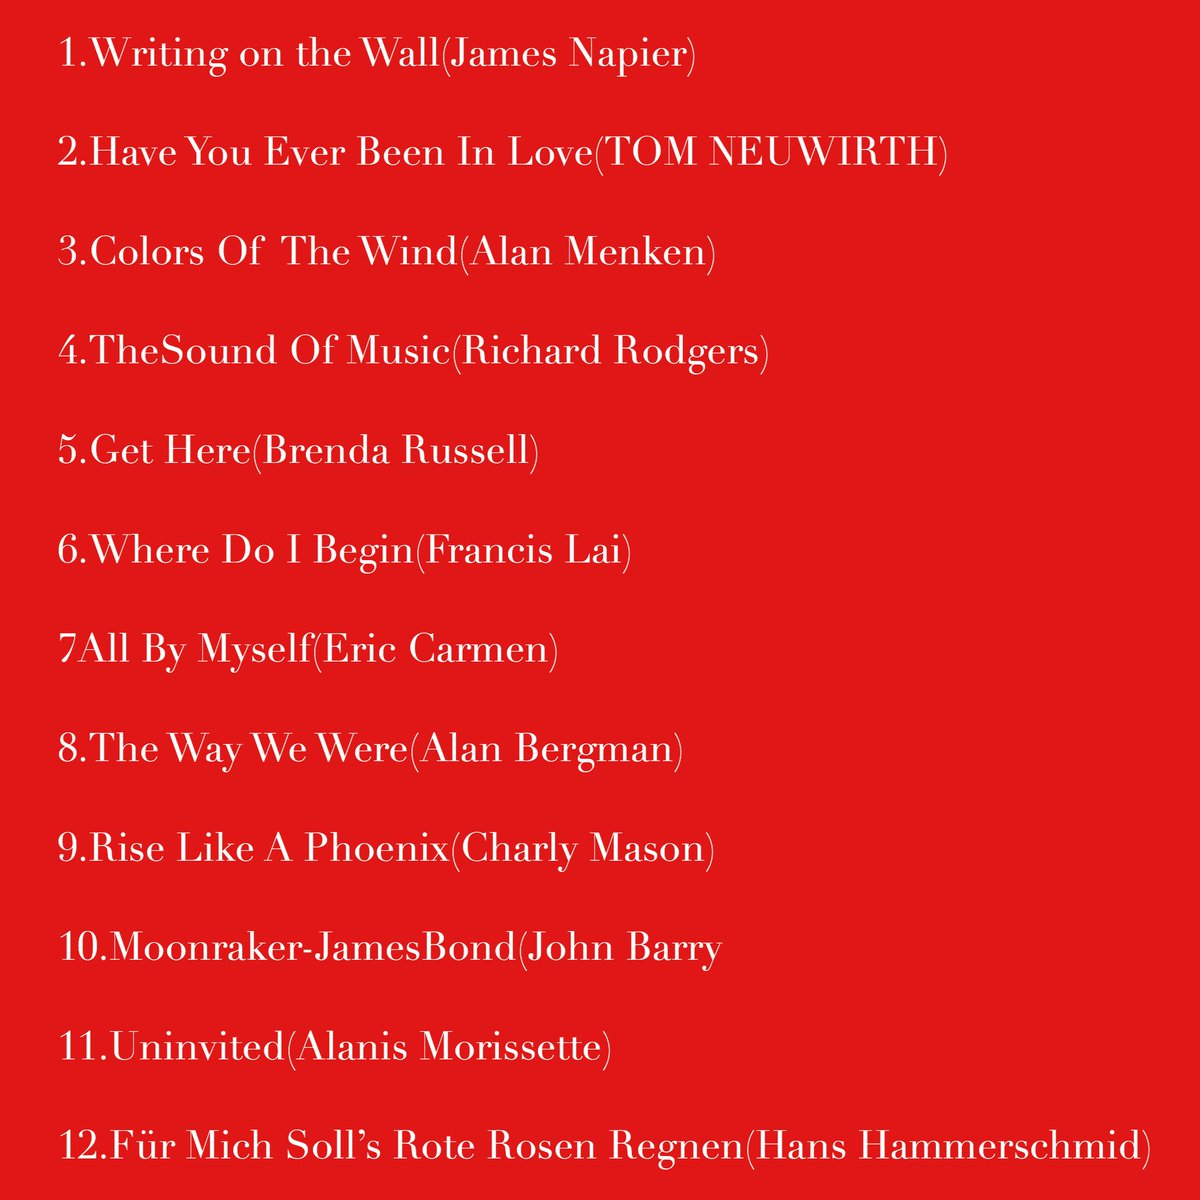 #theunstoppables we KNOW the setlist of #ConchitaWurst 's CD (Oct 20th) with the #WienerSymphoniker #FromViennaWithLove    https://www. wienersymphoniker.at/de/medien/conc hita-vienna-love &nbsp; … <br>http://pic.twitter.com/WxZ3tVF0yE